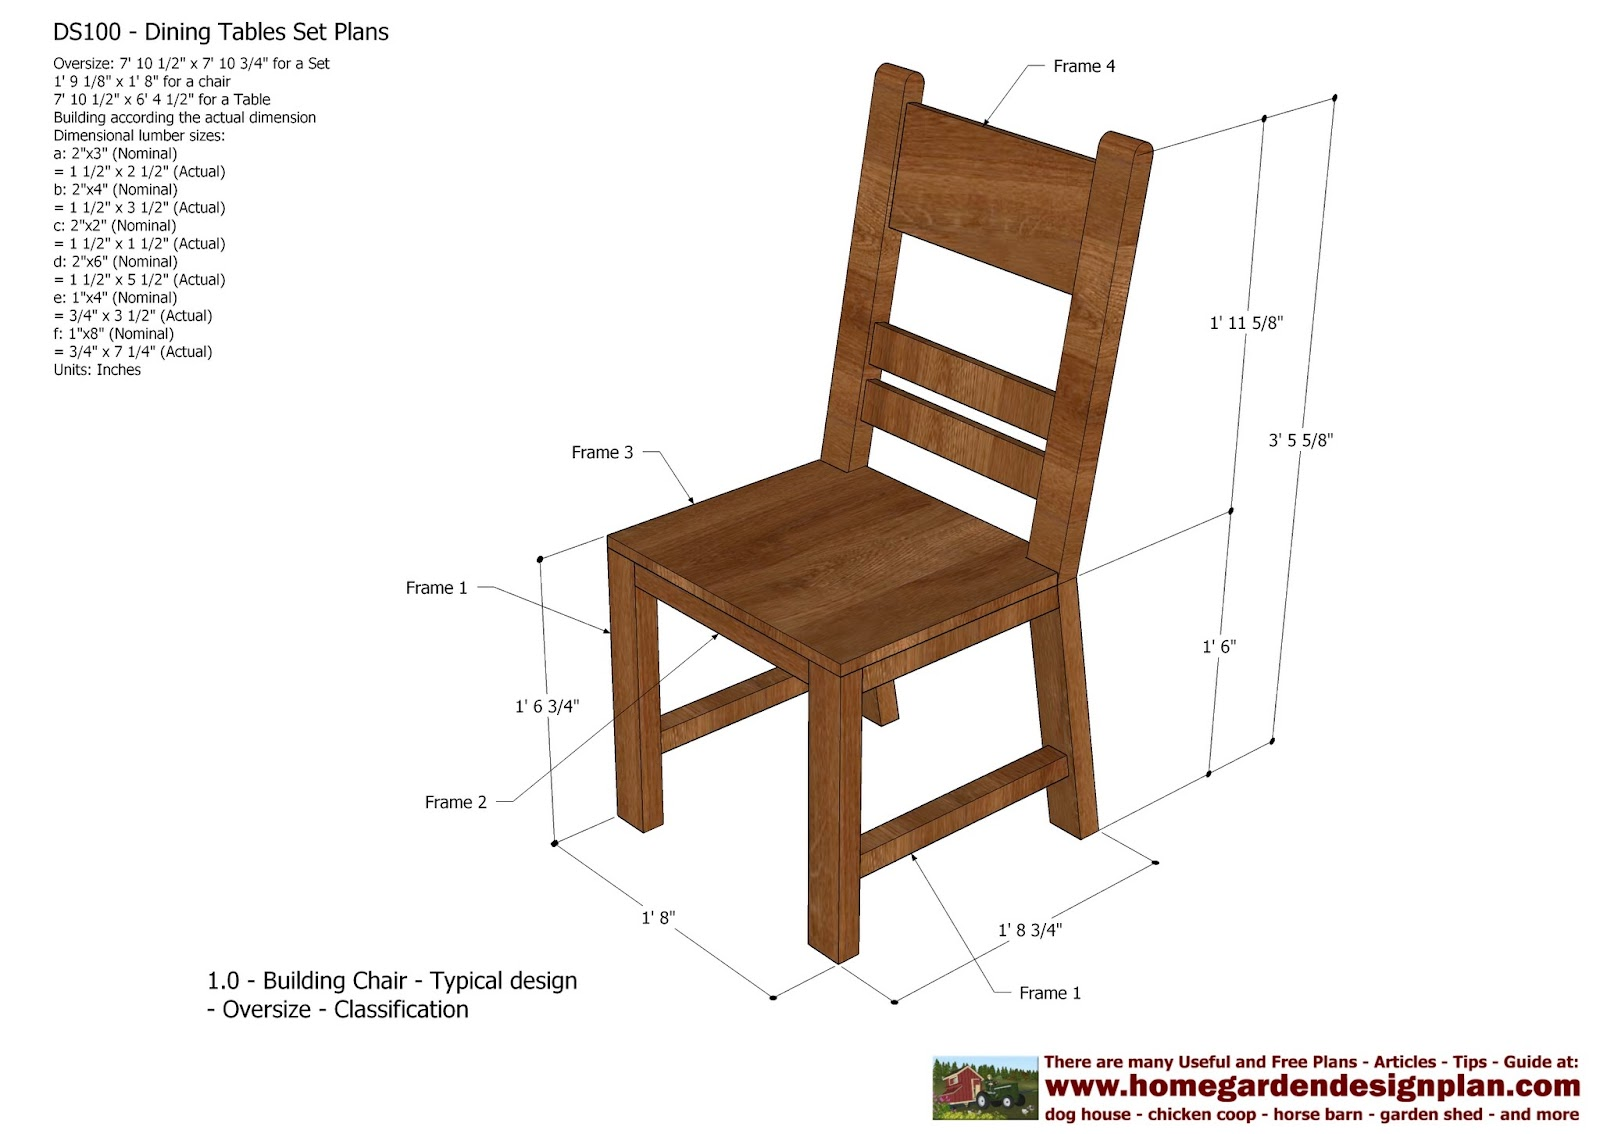 home garden plans: DS100 - Dining Table Set Plans - Woodworking ...